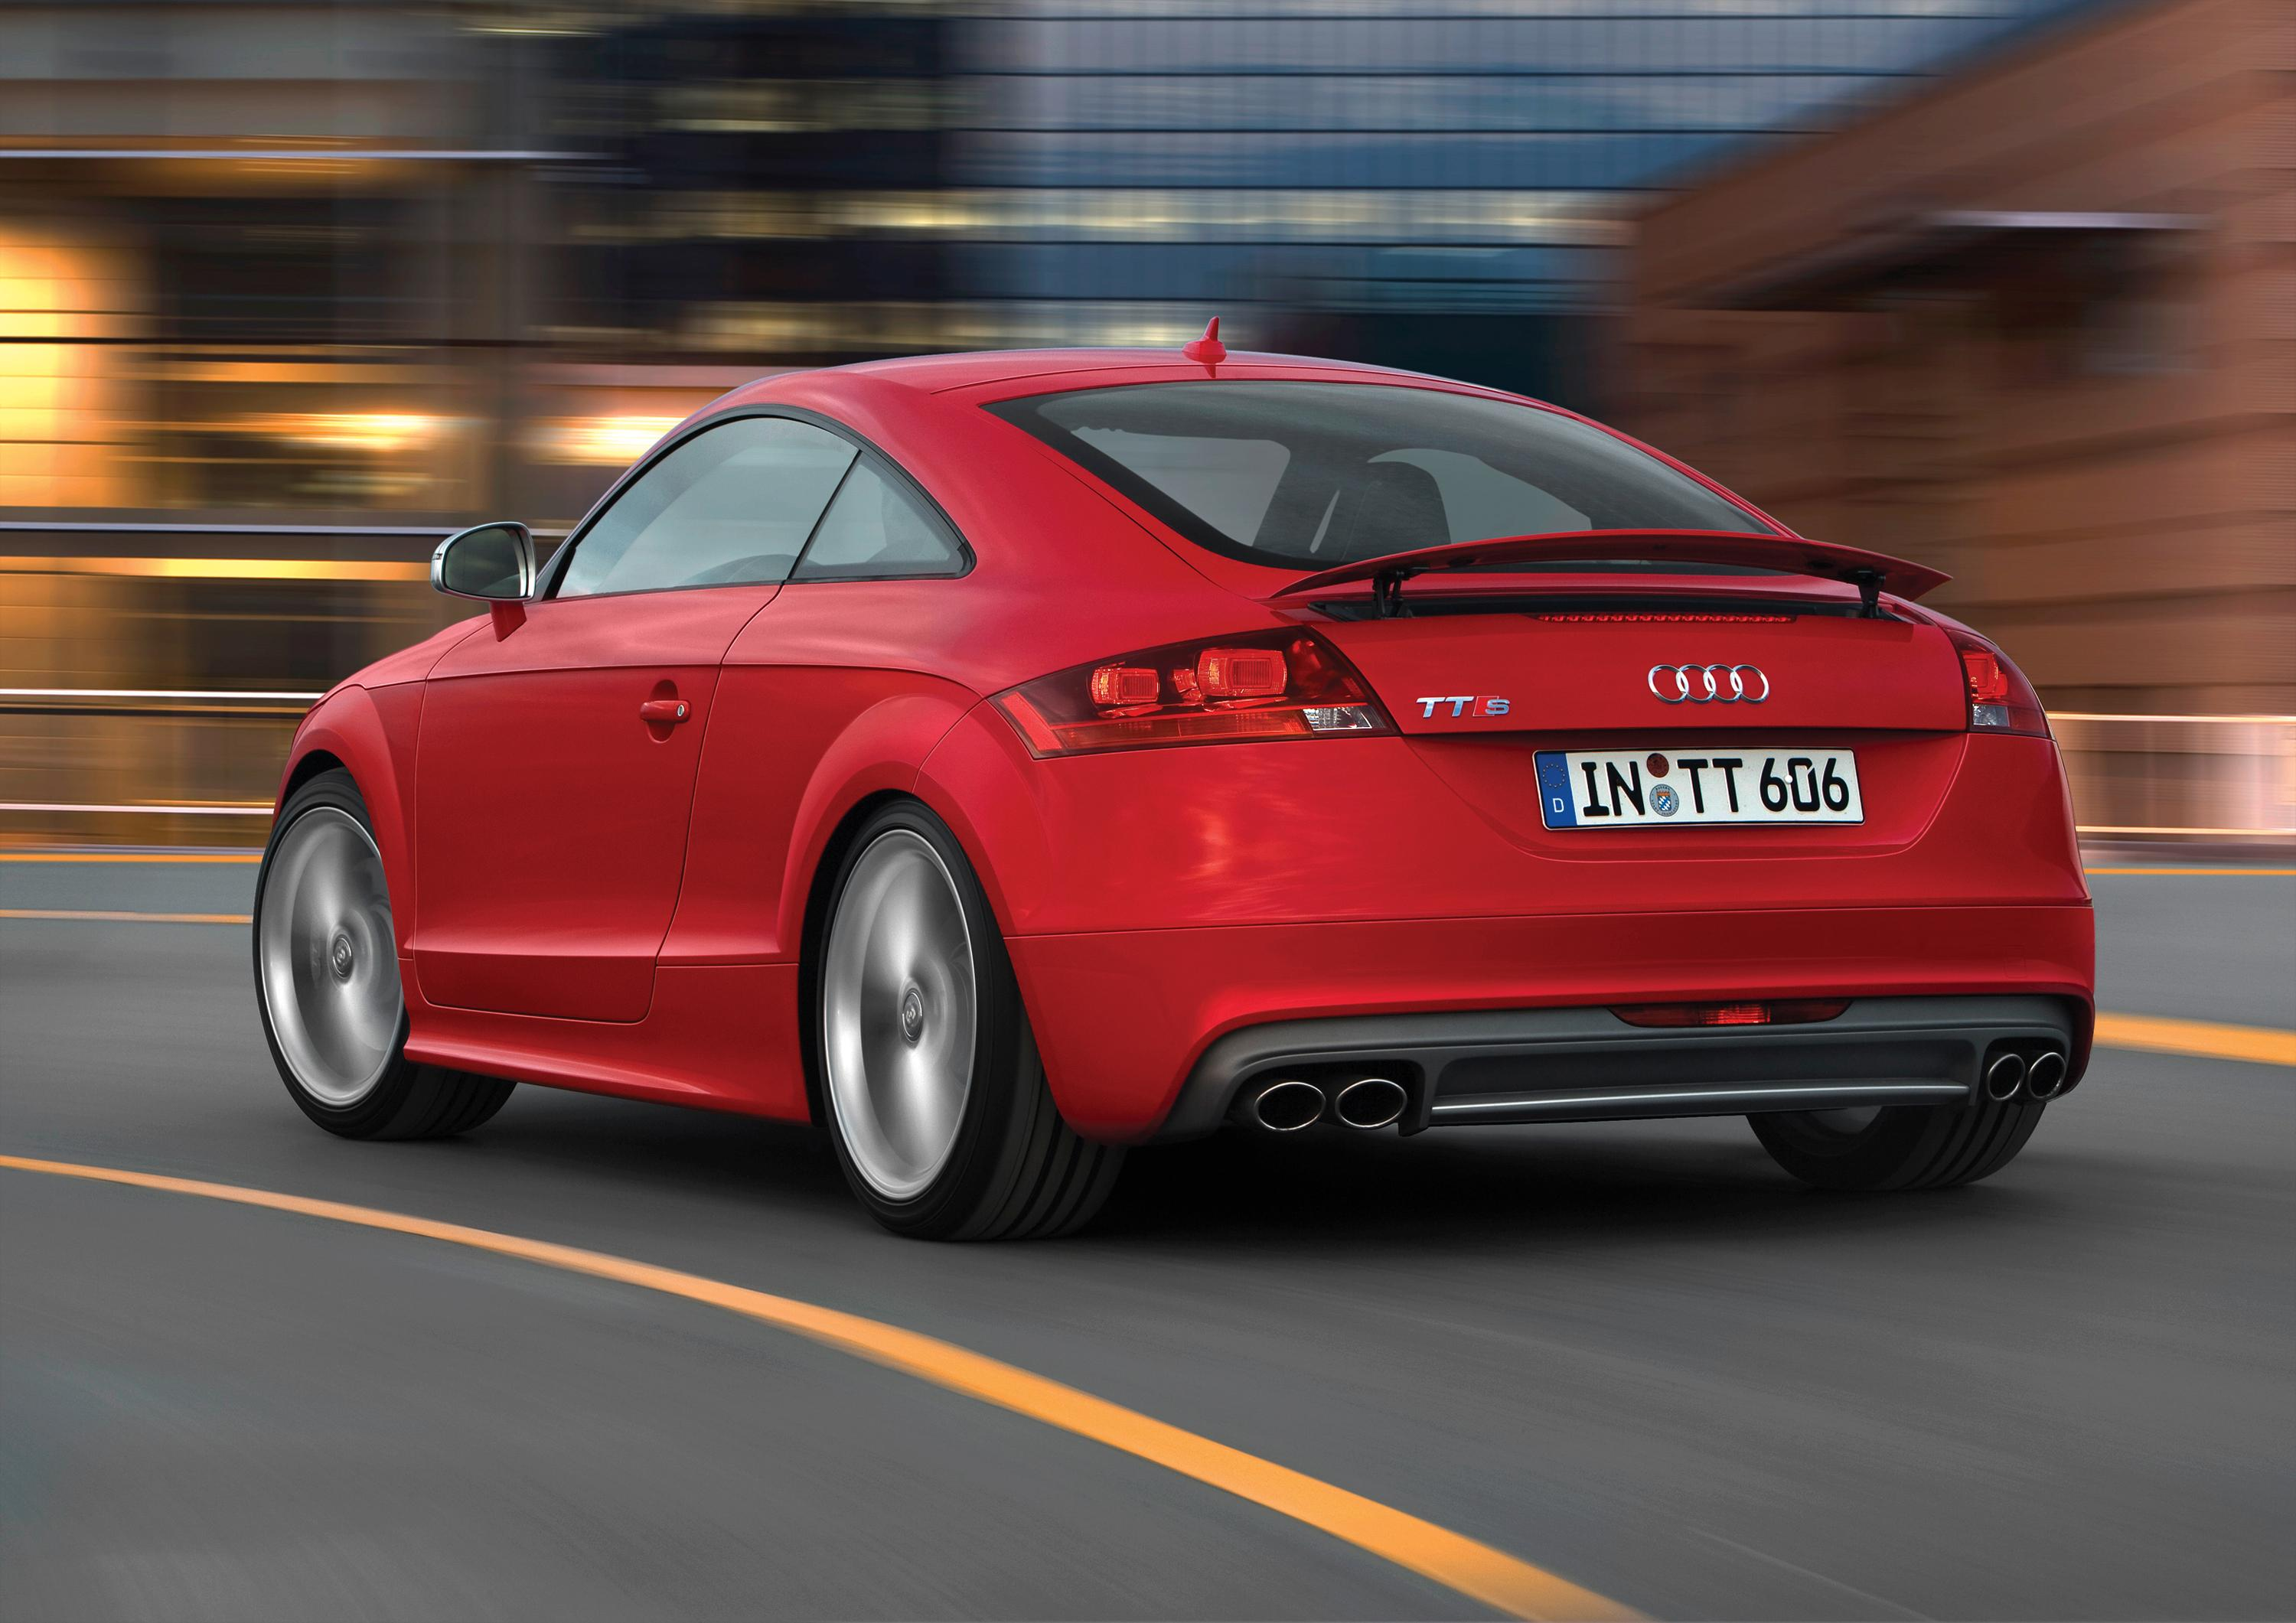 audi sets 2009 my prices for the all new tts coupe and tts. Black Bedroom Furniture Sets. Home Design Ideas